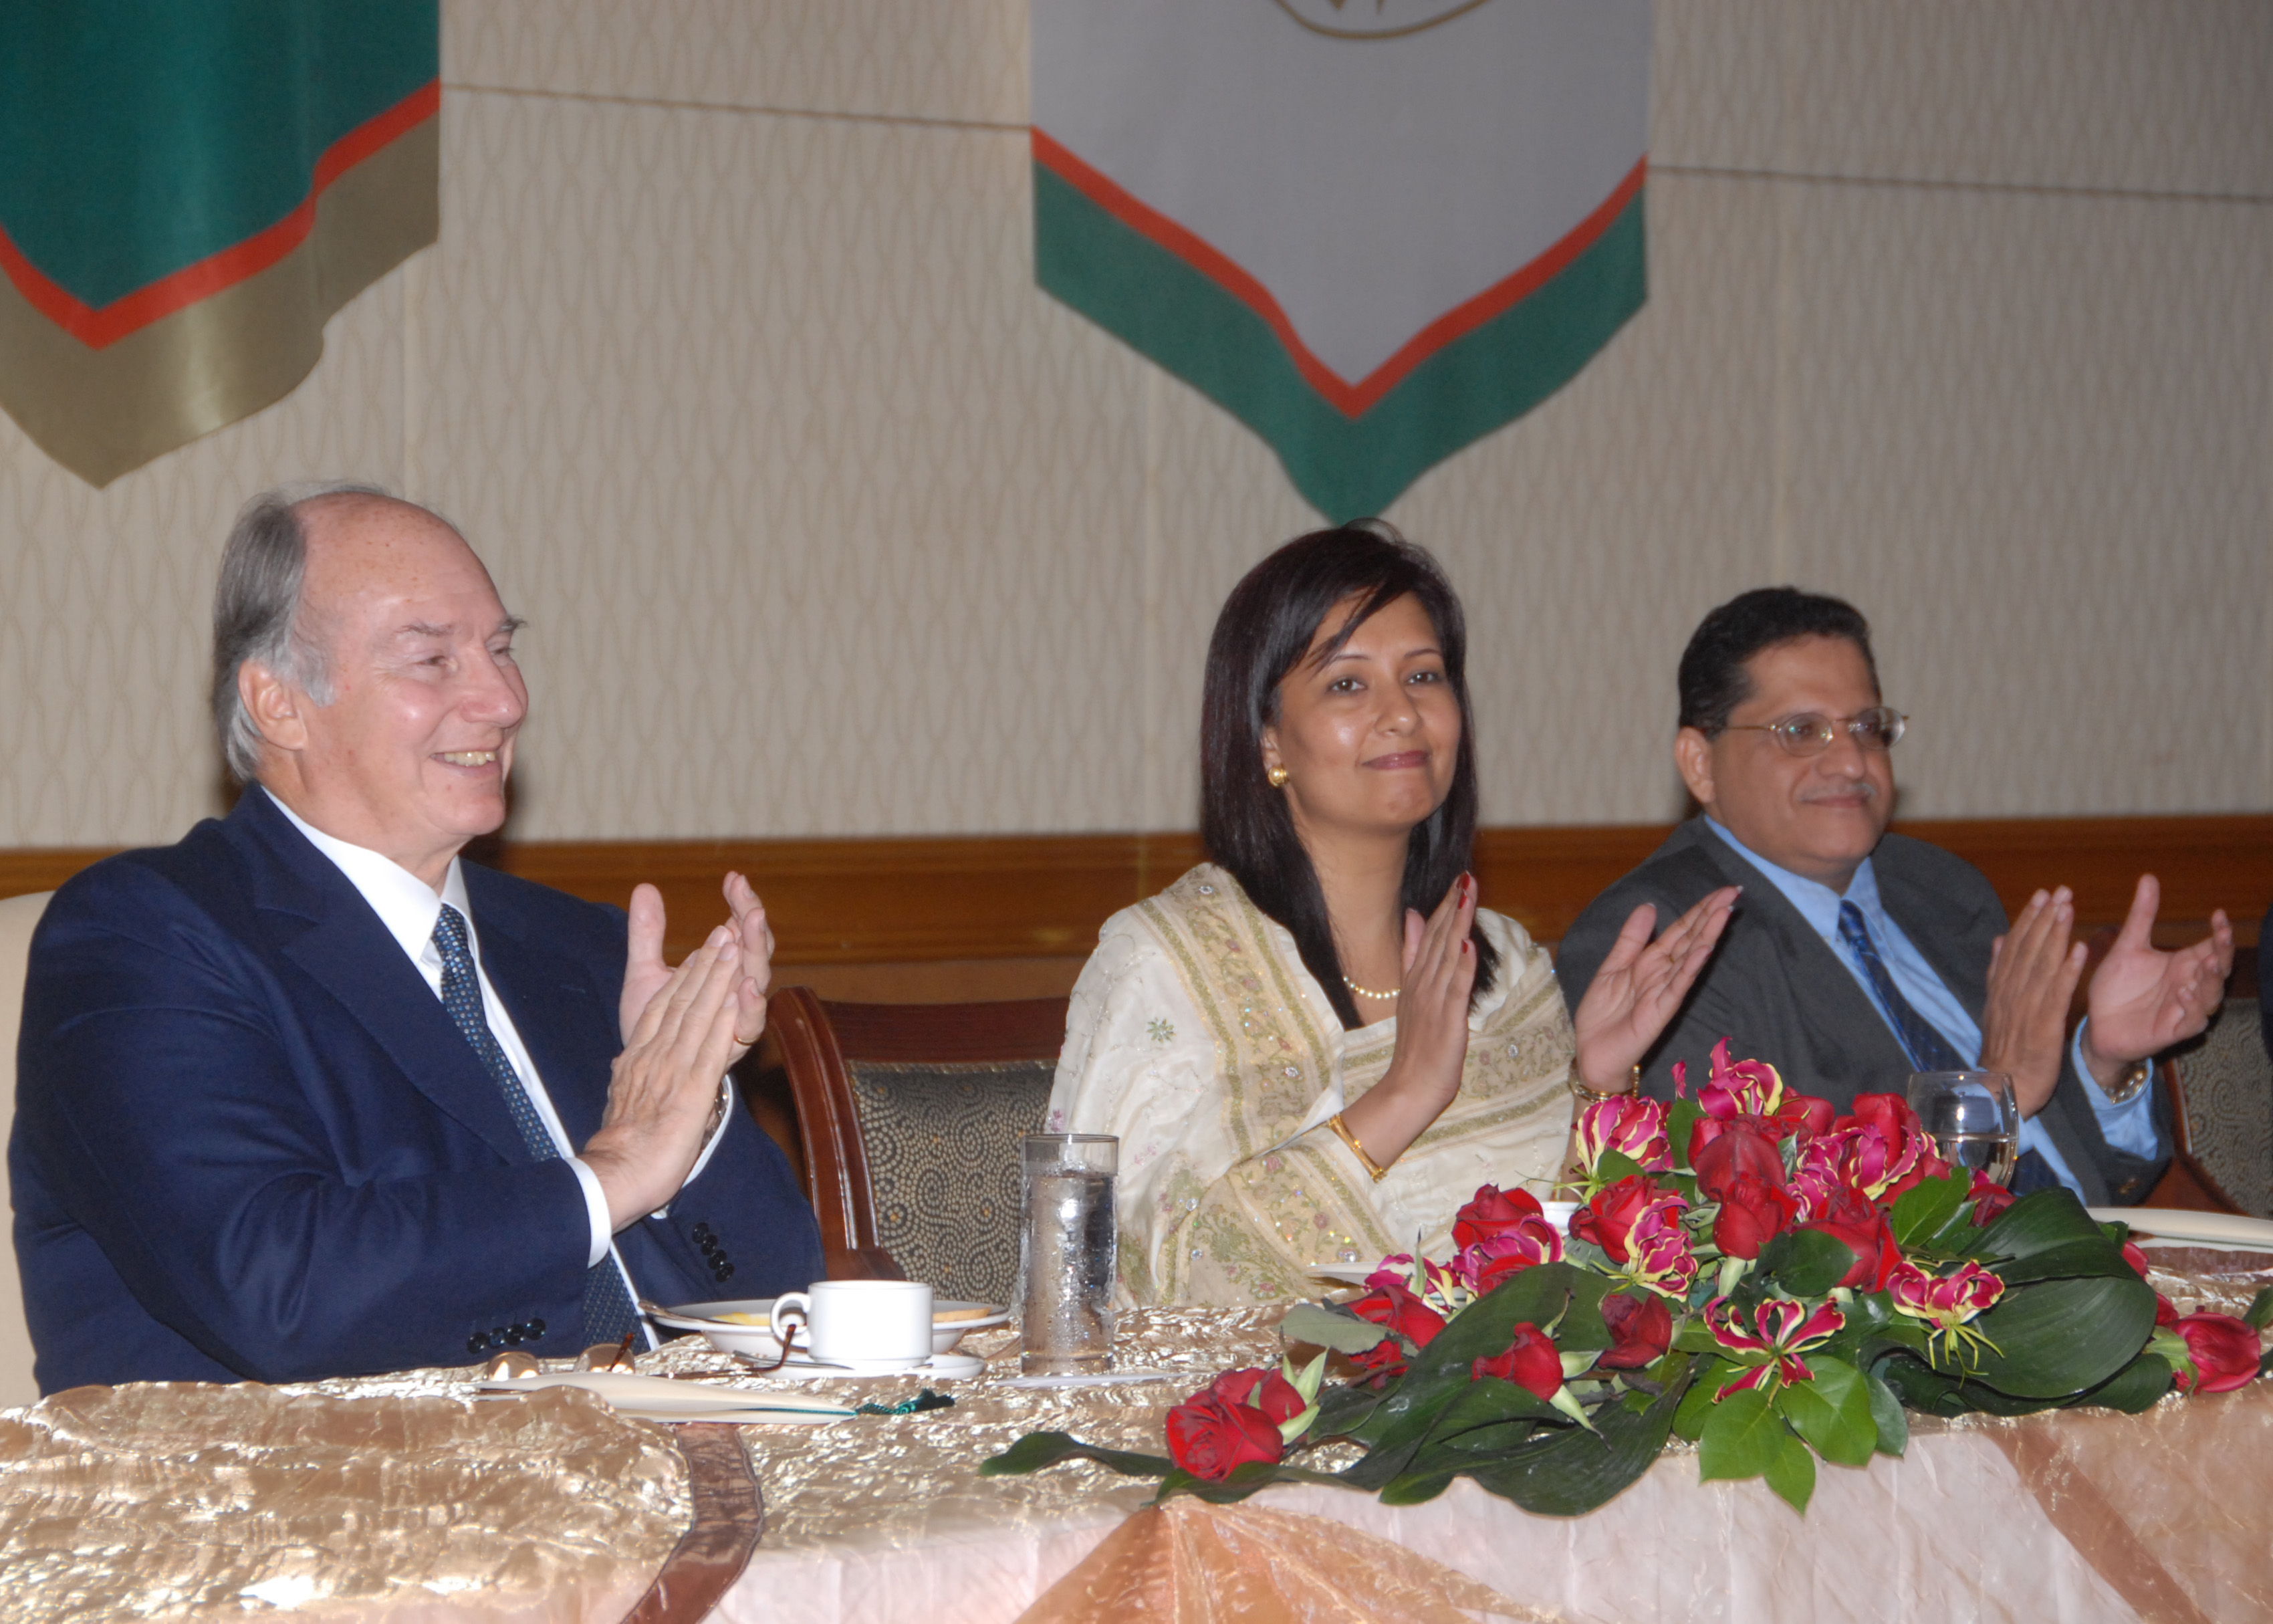 Mawlana Hazar Imam is joined in applause by Presidentbanoo and the Vice-President of the Ismaili Council for Malaysia and Singapore, during a luncheon hosted by the Jamati institutions. Photo: Akbar Hakim